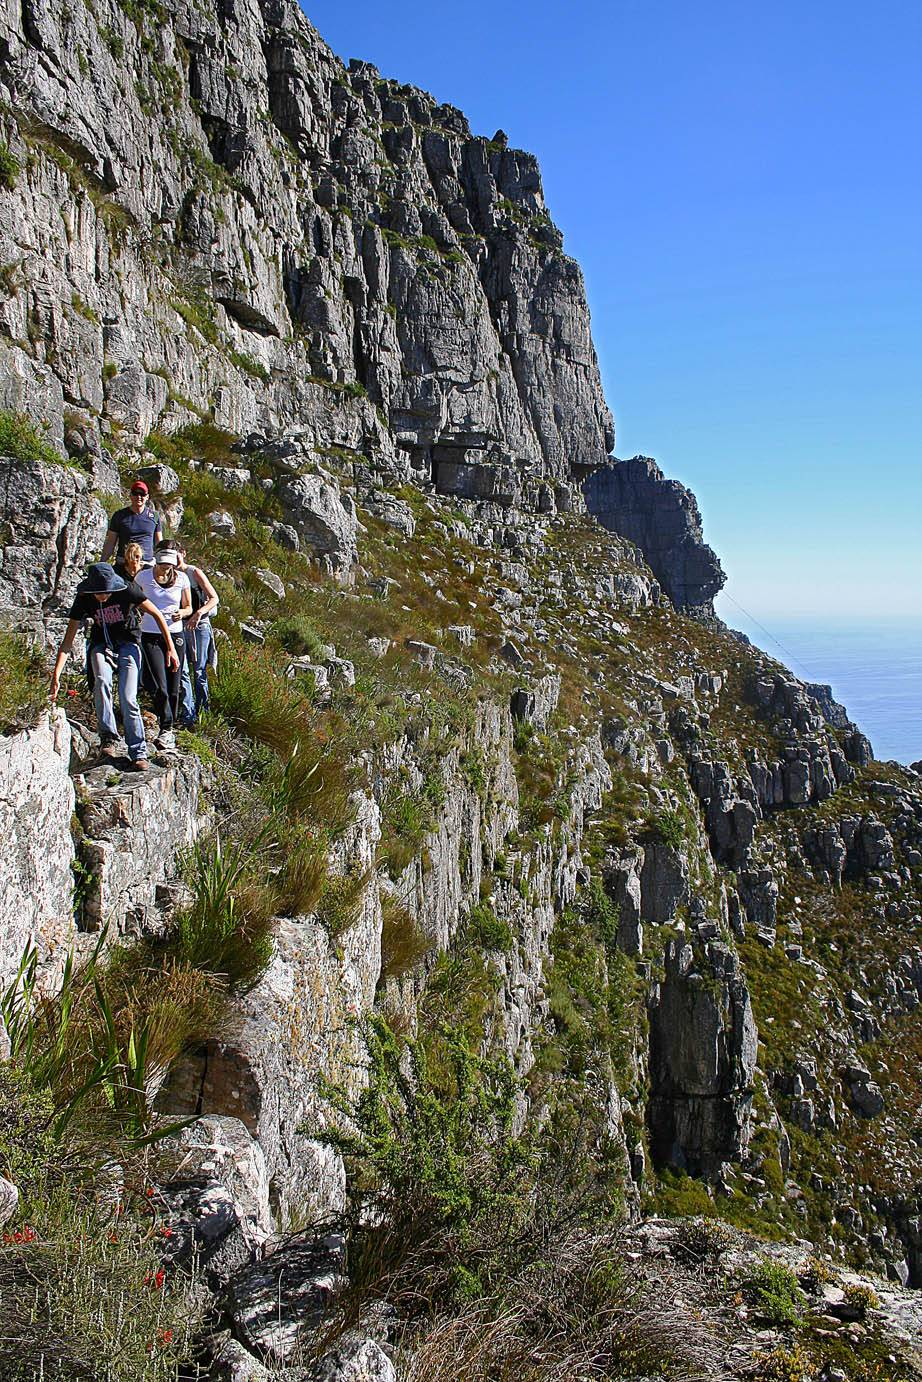 A group traversing on the Left Face trail on Table Mountain, with a mountain guide. Kapstadt, Tafelberg Führer - Left Face Route